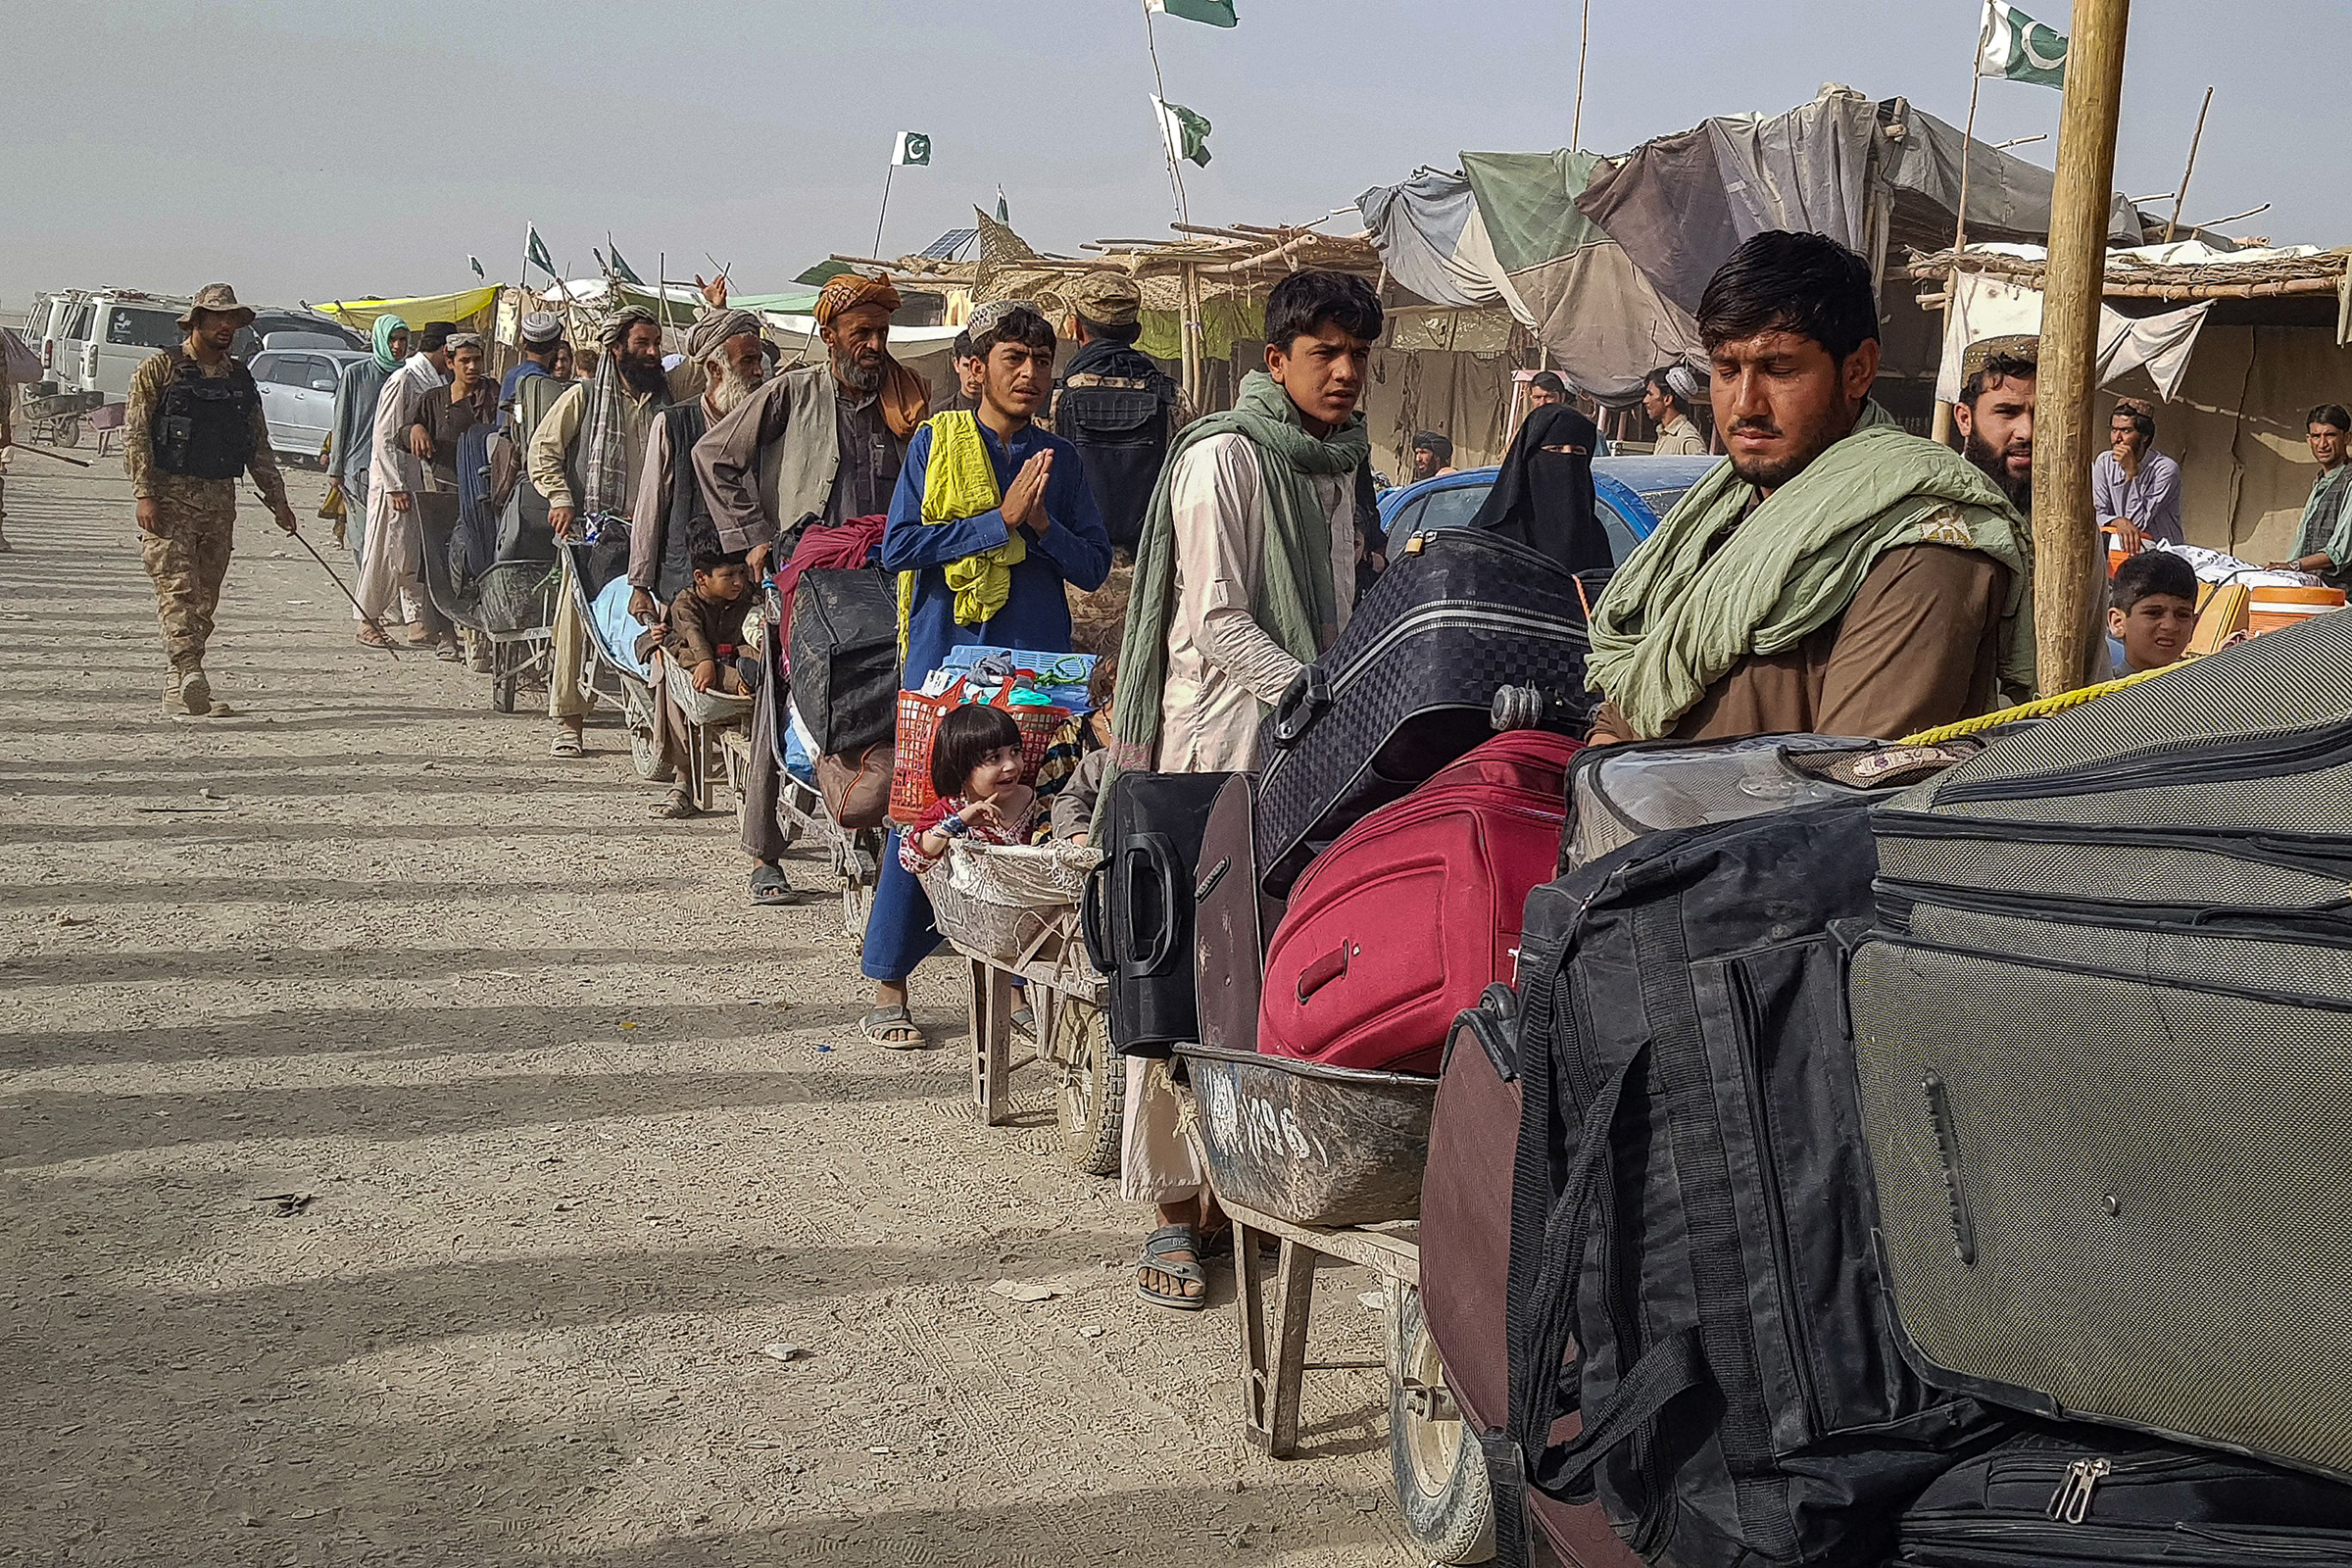 Afghan nationals queue up at the Pakistan-Afghanistan border crossing point in Chaman, on August 17.